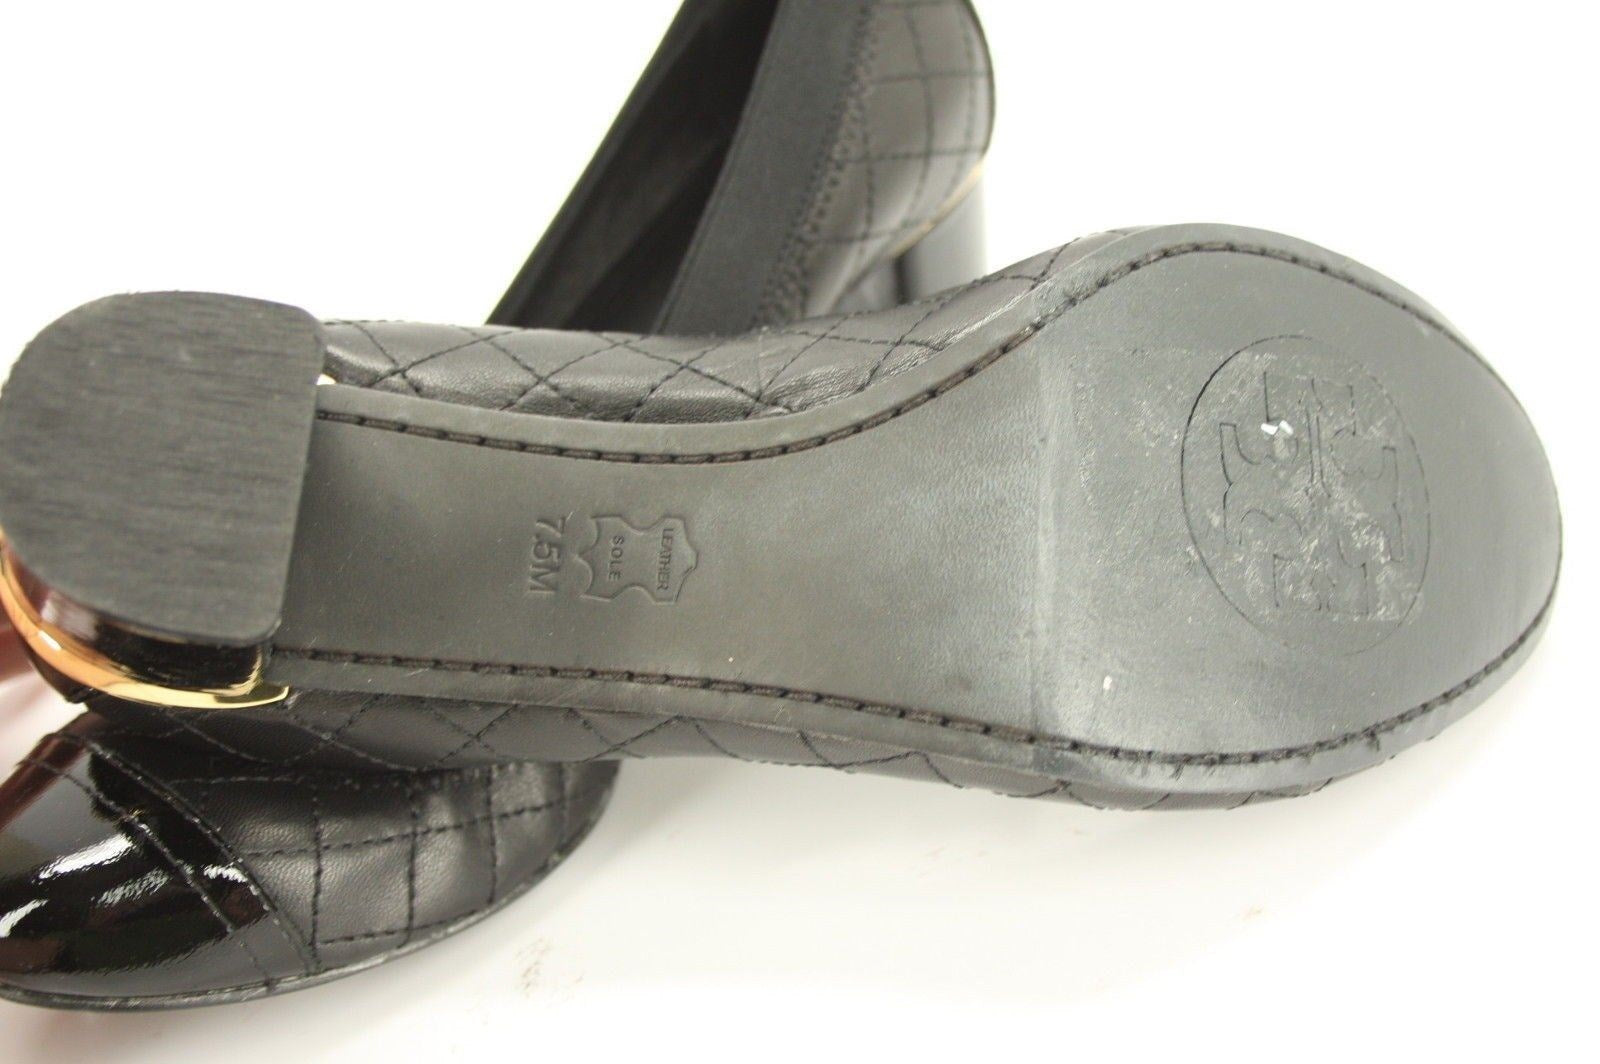 Tory Burch Black Leather Carrie Pumps SZ 7.5 Quilted Cap Toe Logo mid Heel $250